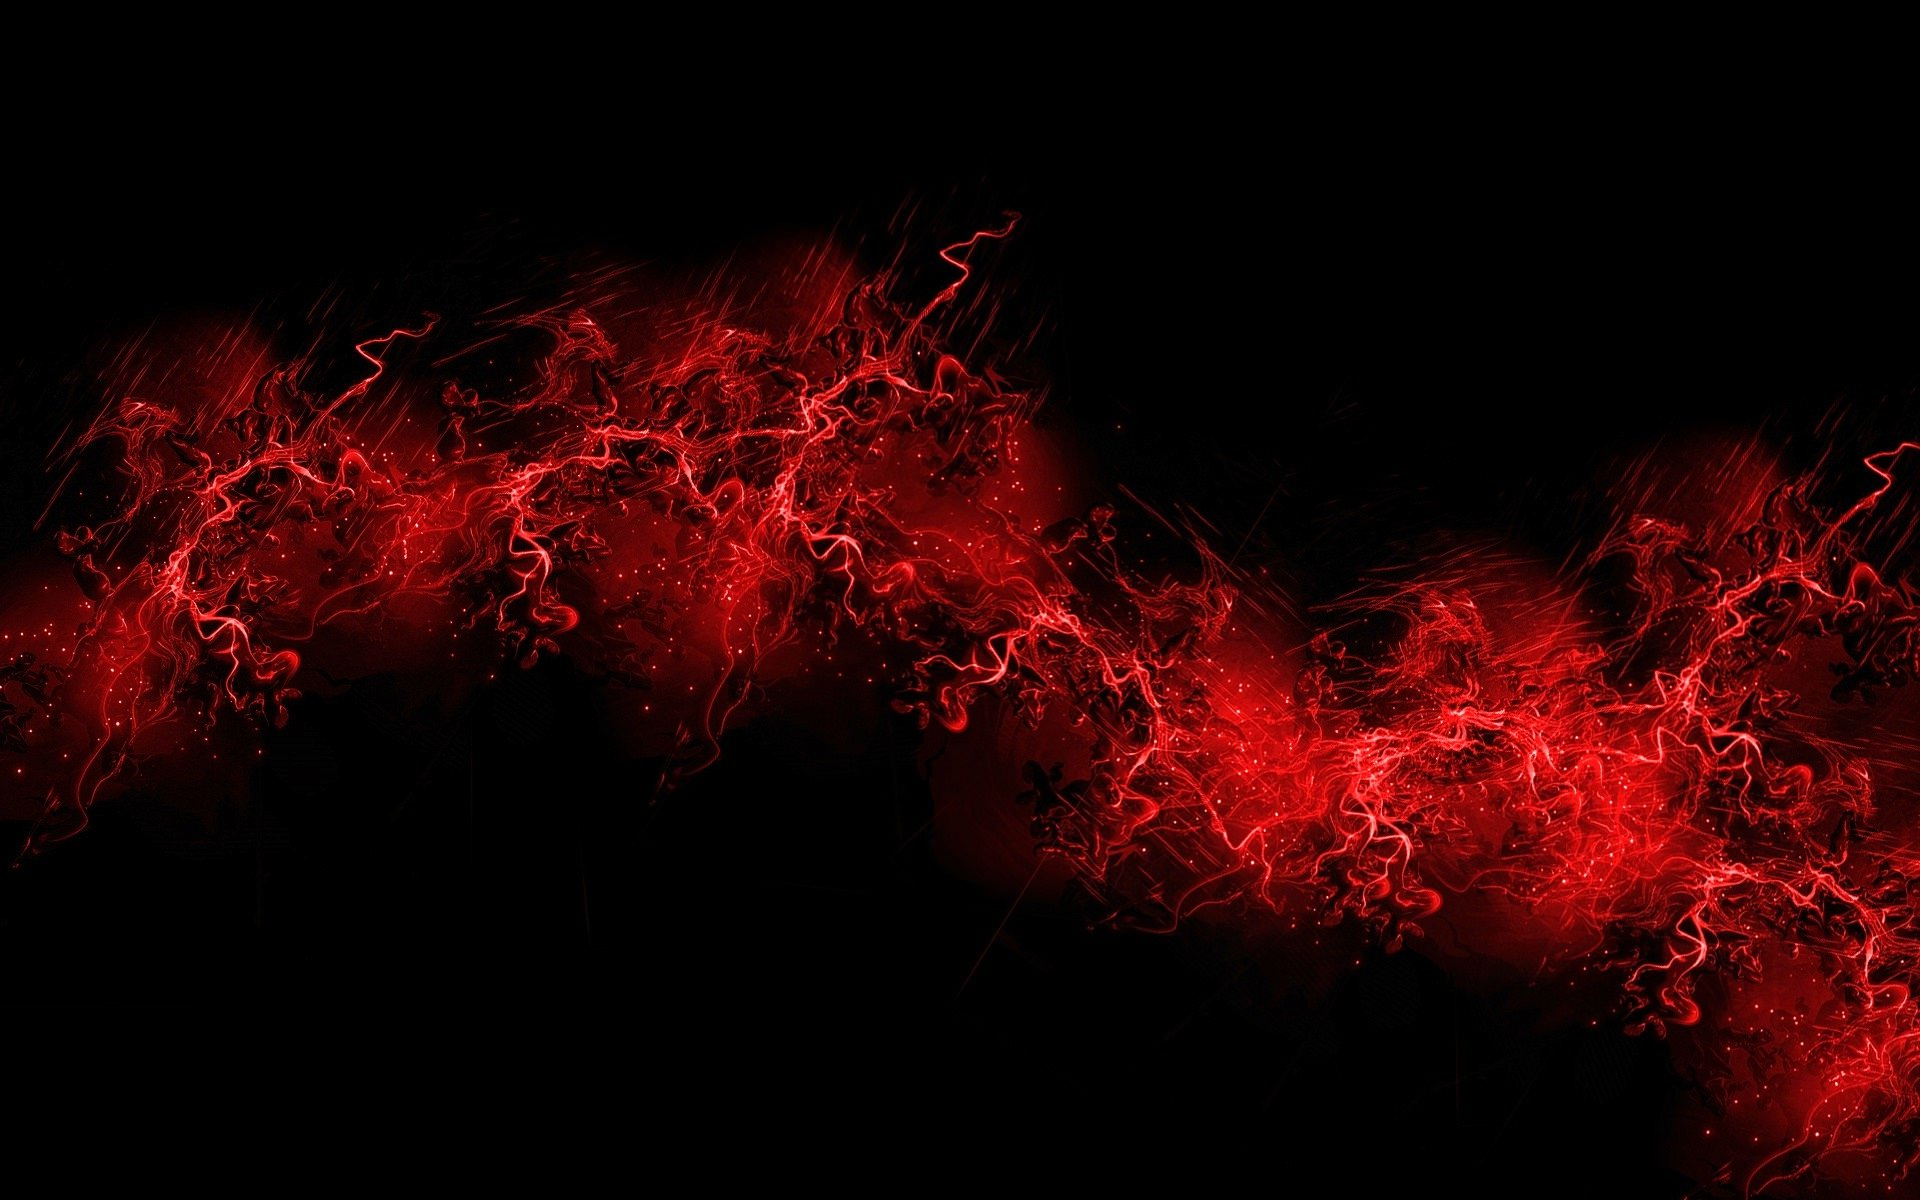 Red & Black Background Wallpaper